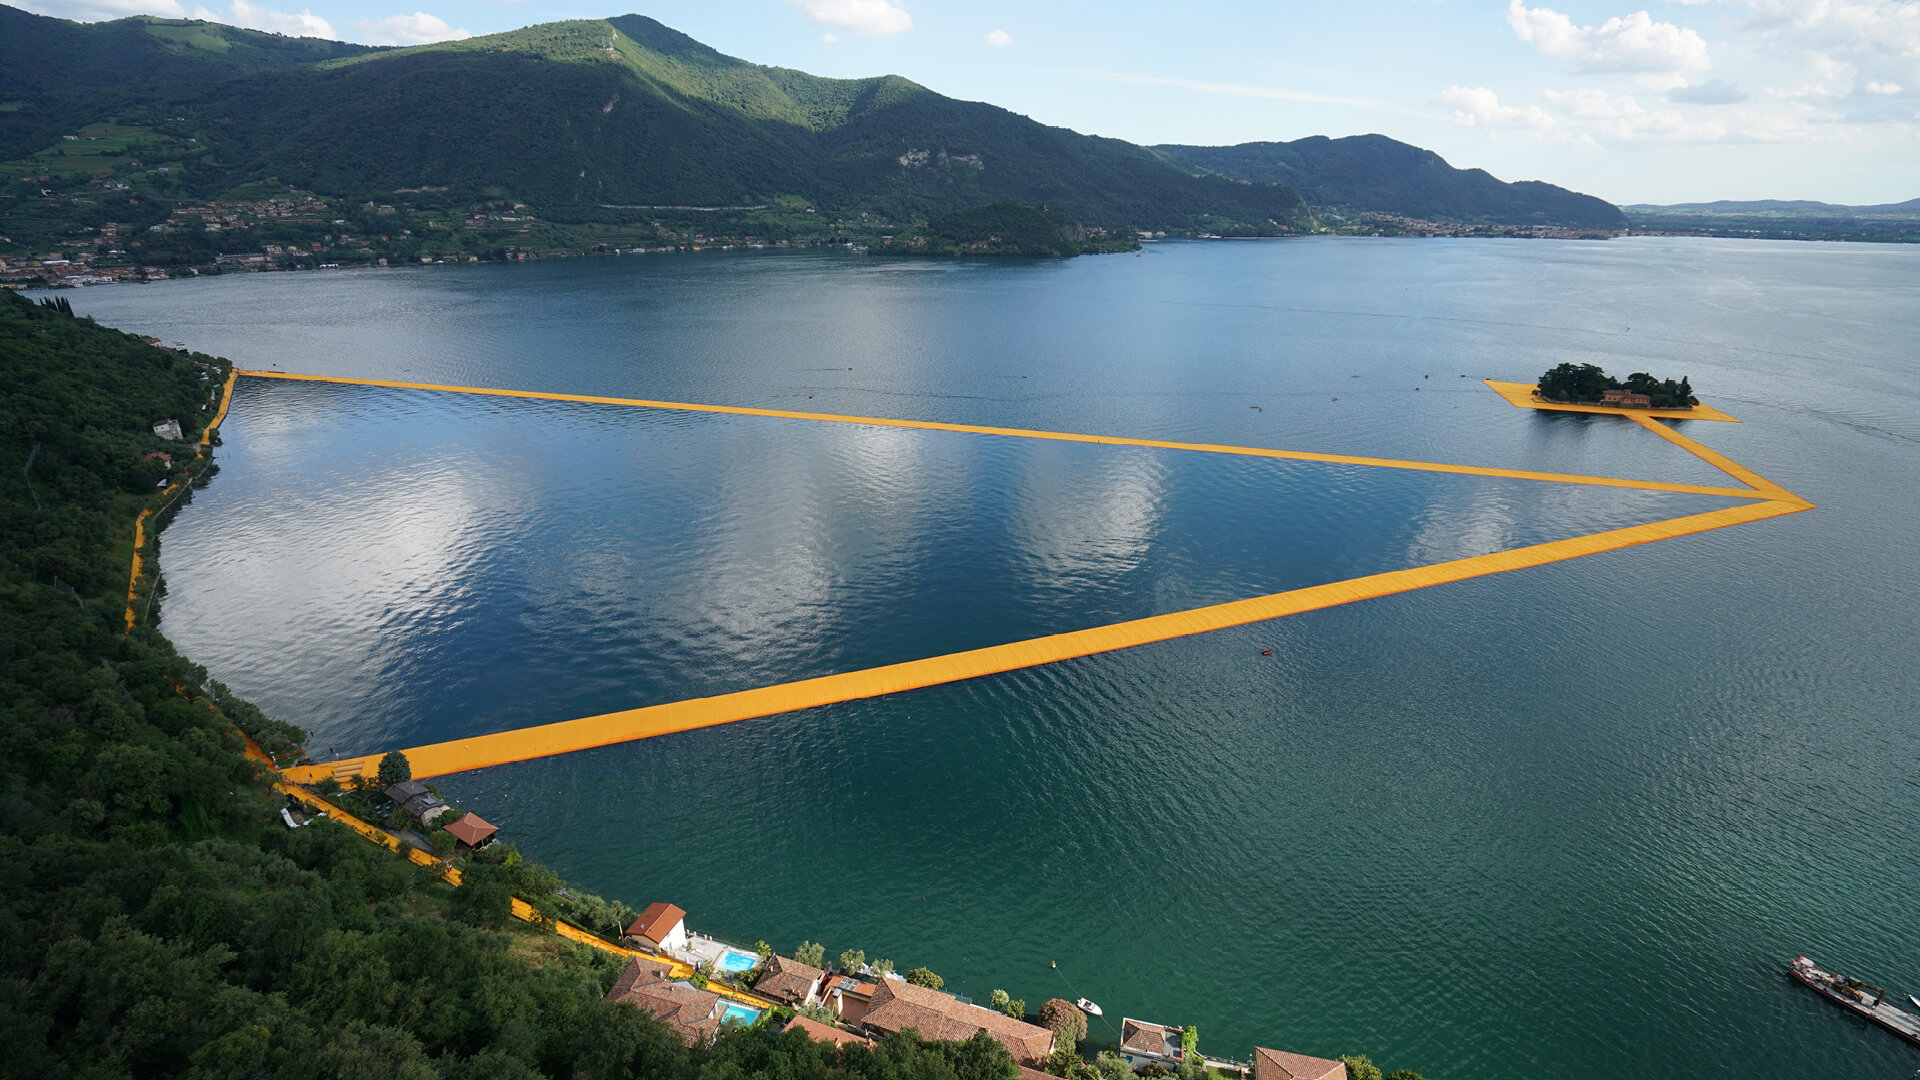 The Floating Piers, a large scale art installation in Italy, by artists Christo and Jeanne-Claude | The Floating Piers by Christo and Jeanne-Claude | STIRworld